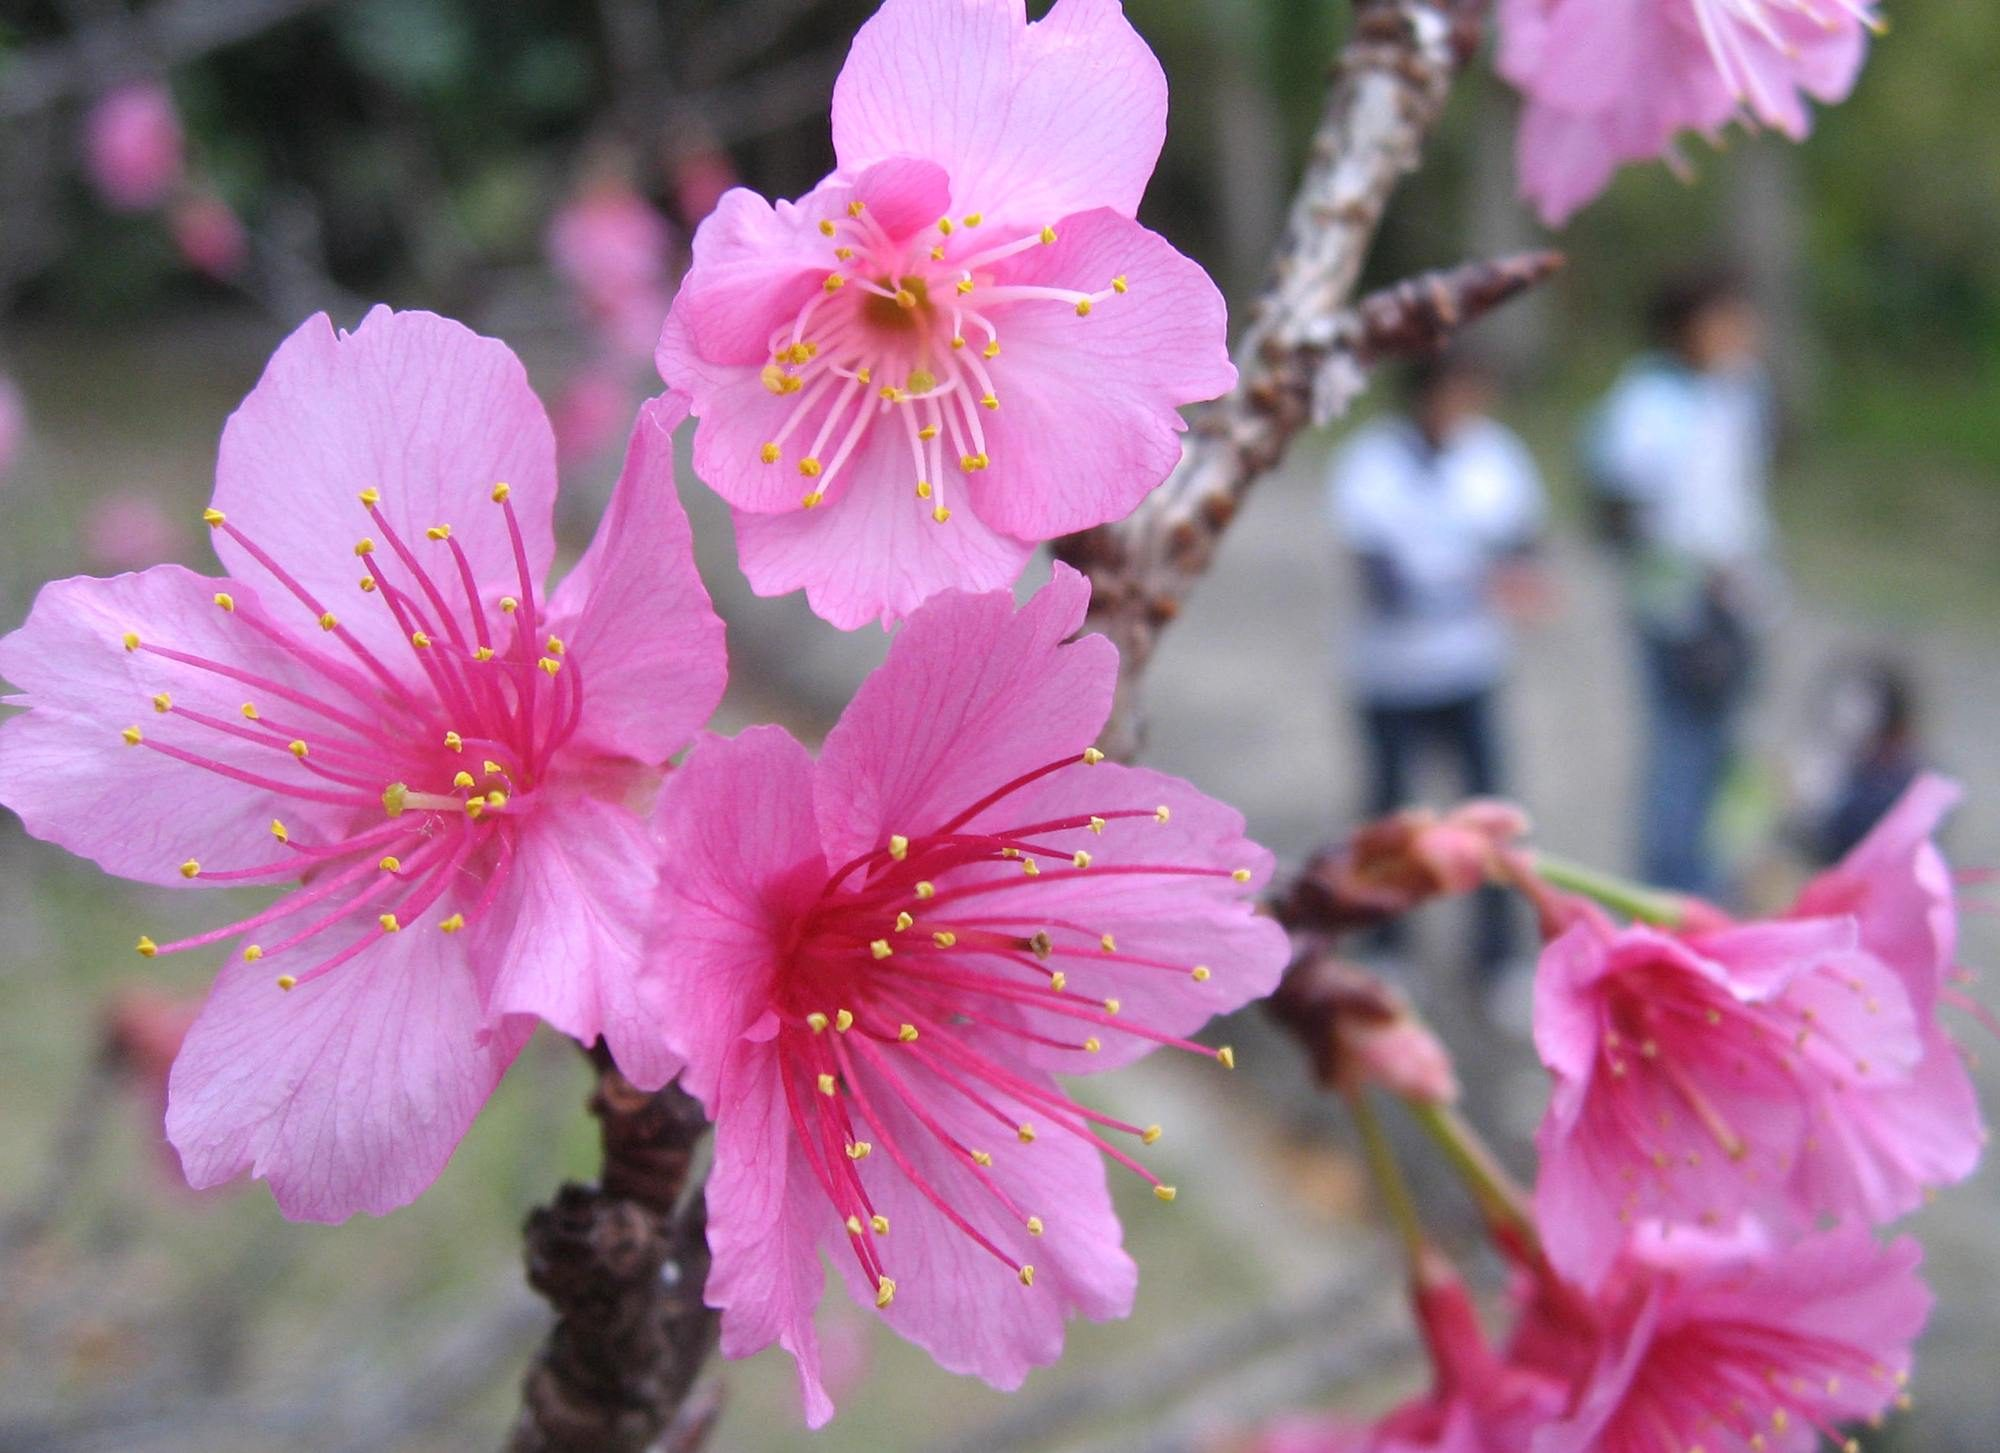 It's February, and Okinawa Is Abloom With Cherry Blossoms